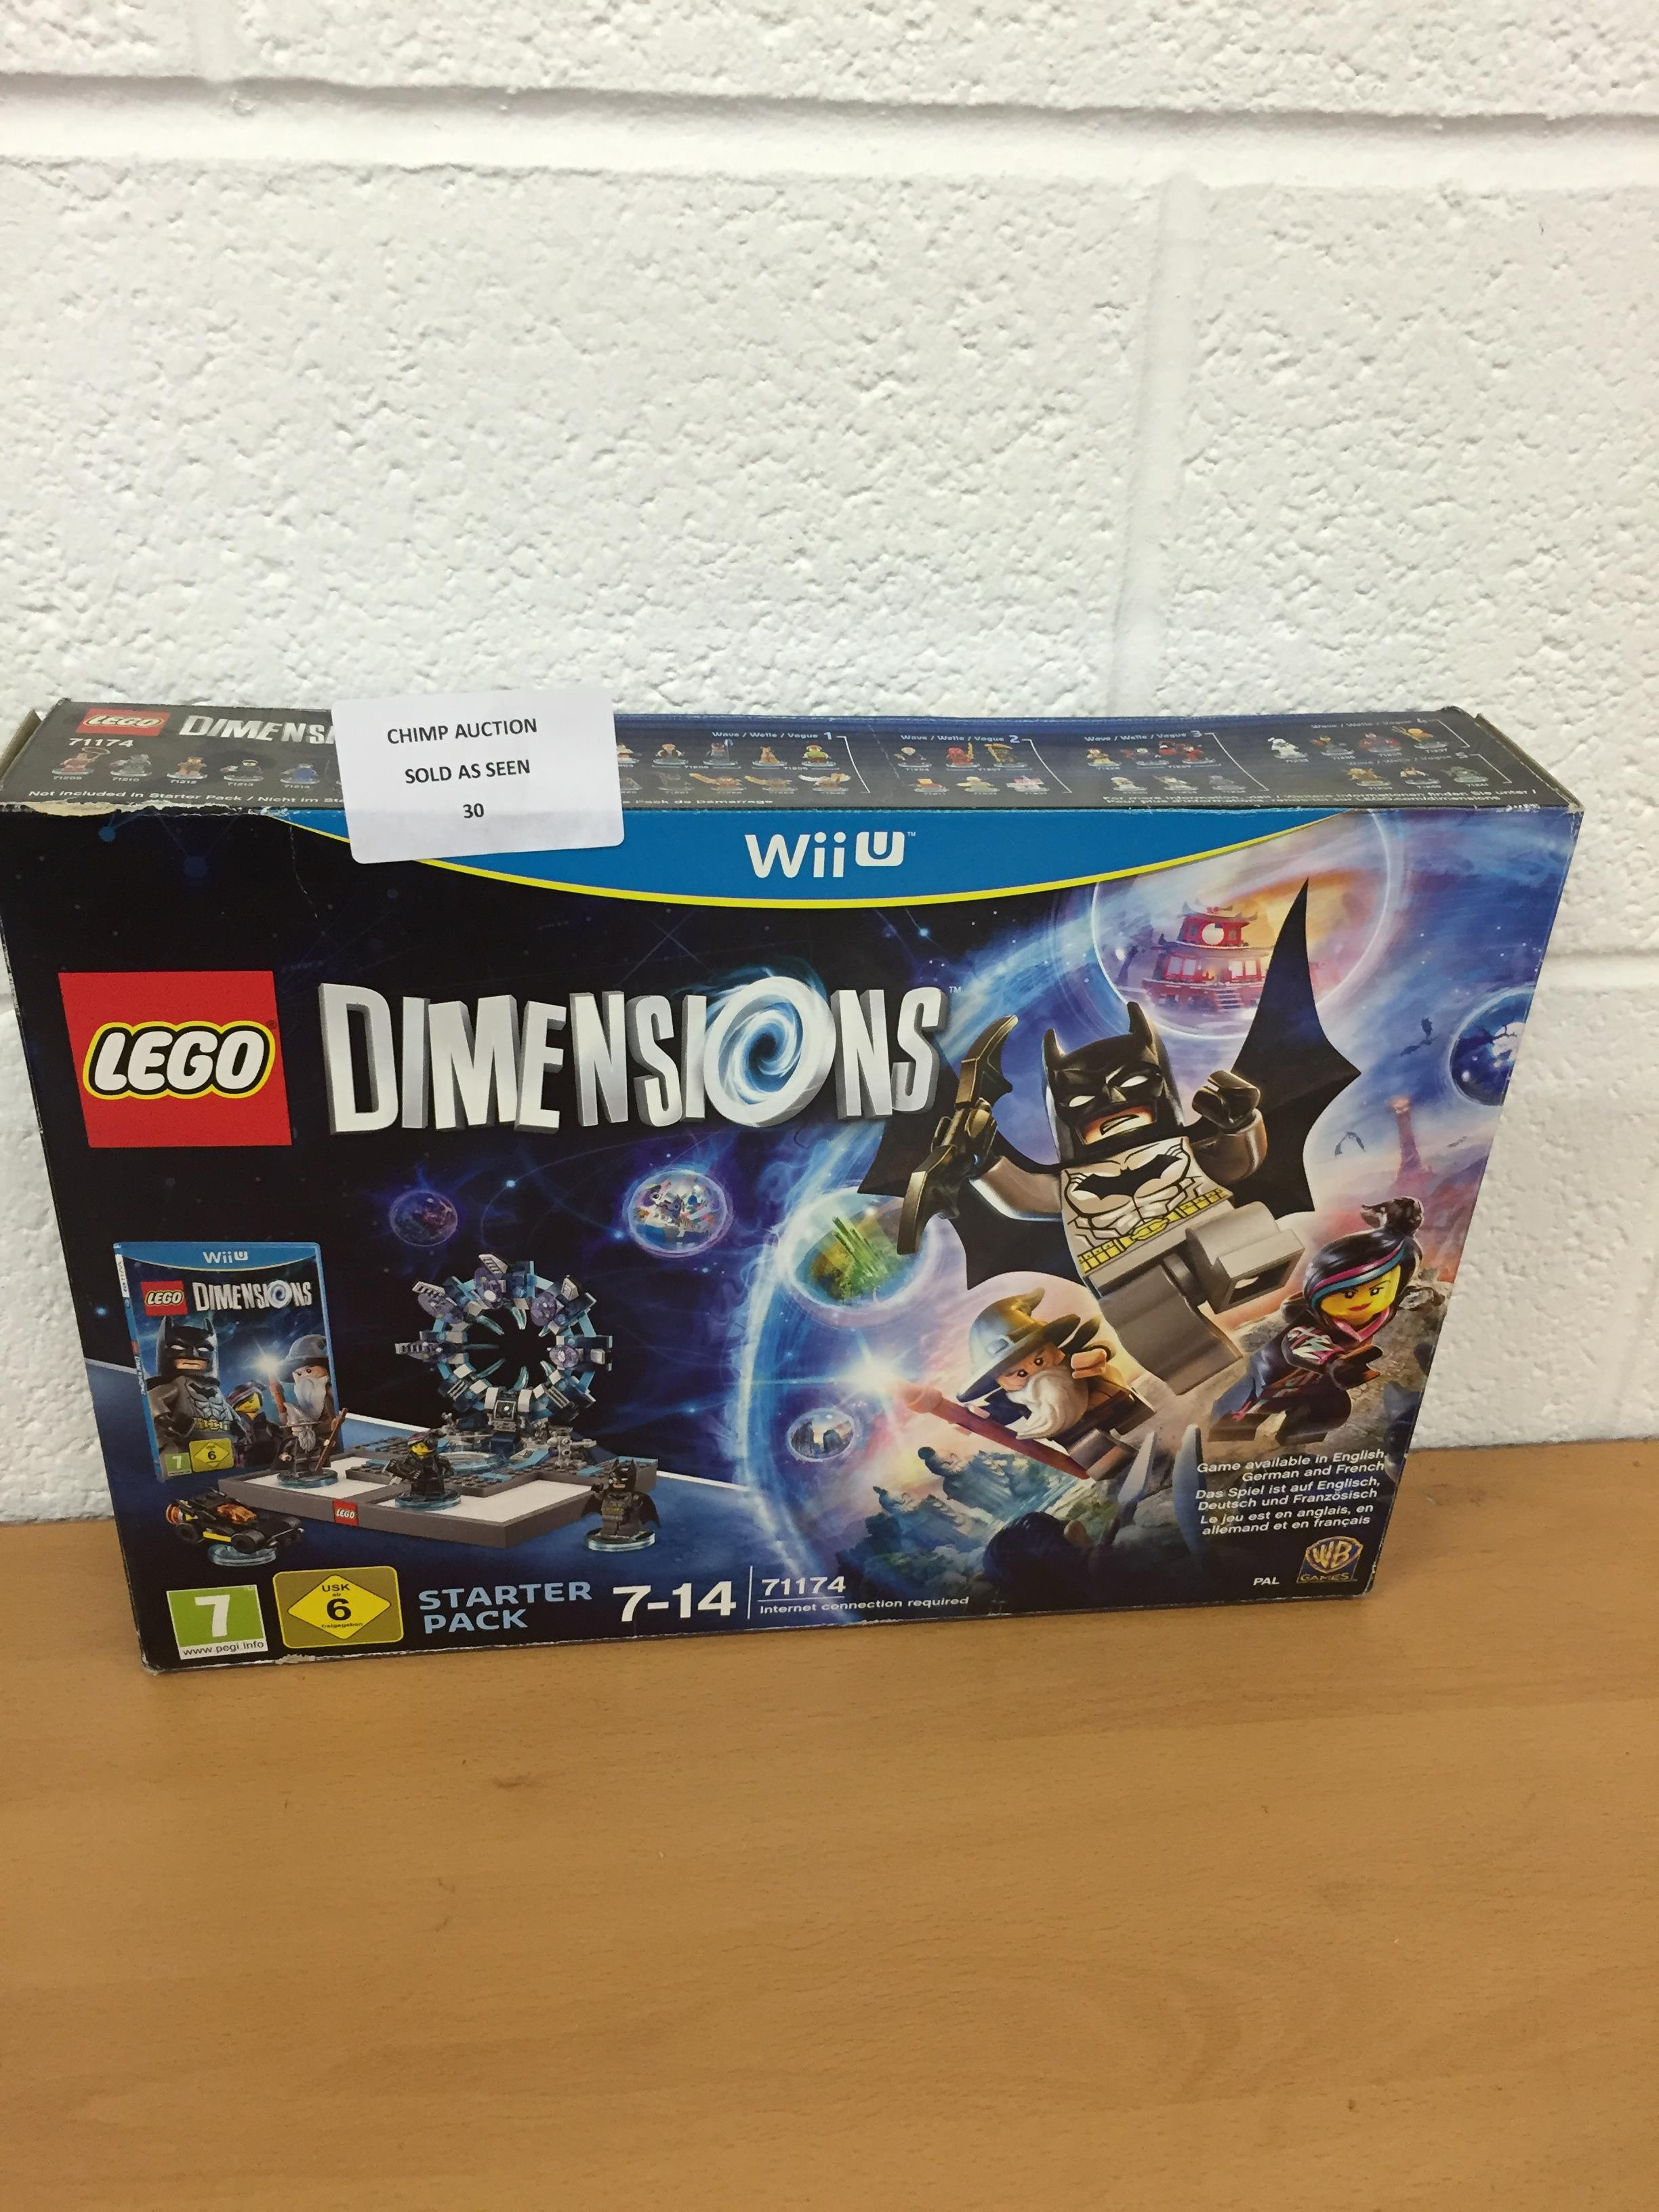 Lot 30 - Lego Dimensions Nintendo Wii U starter pack RRP £99.99.